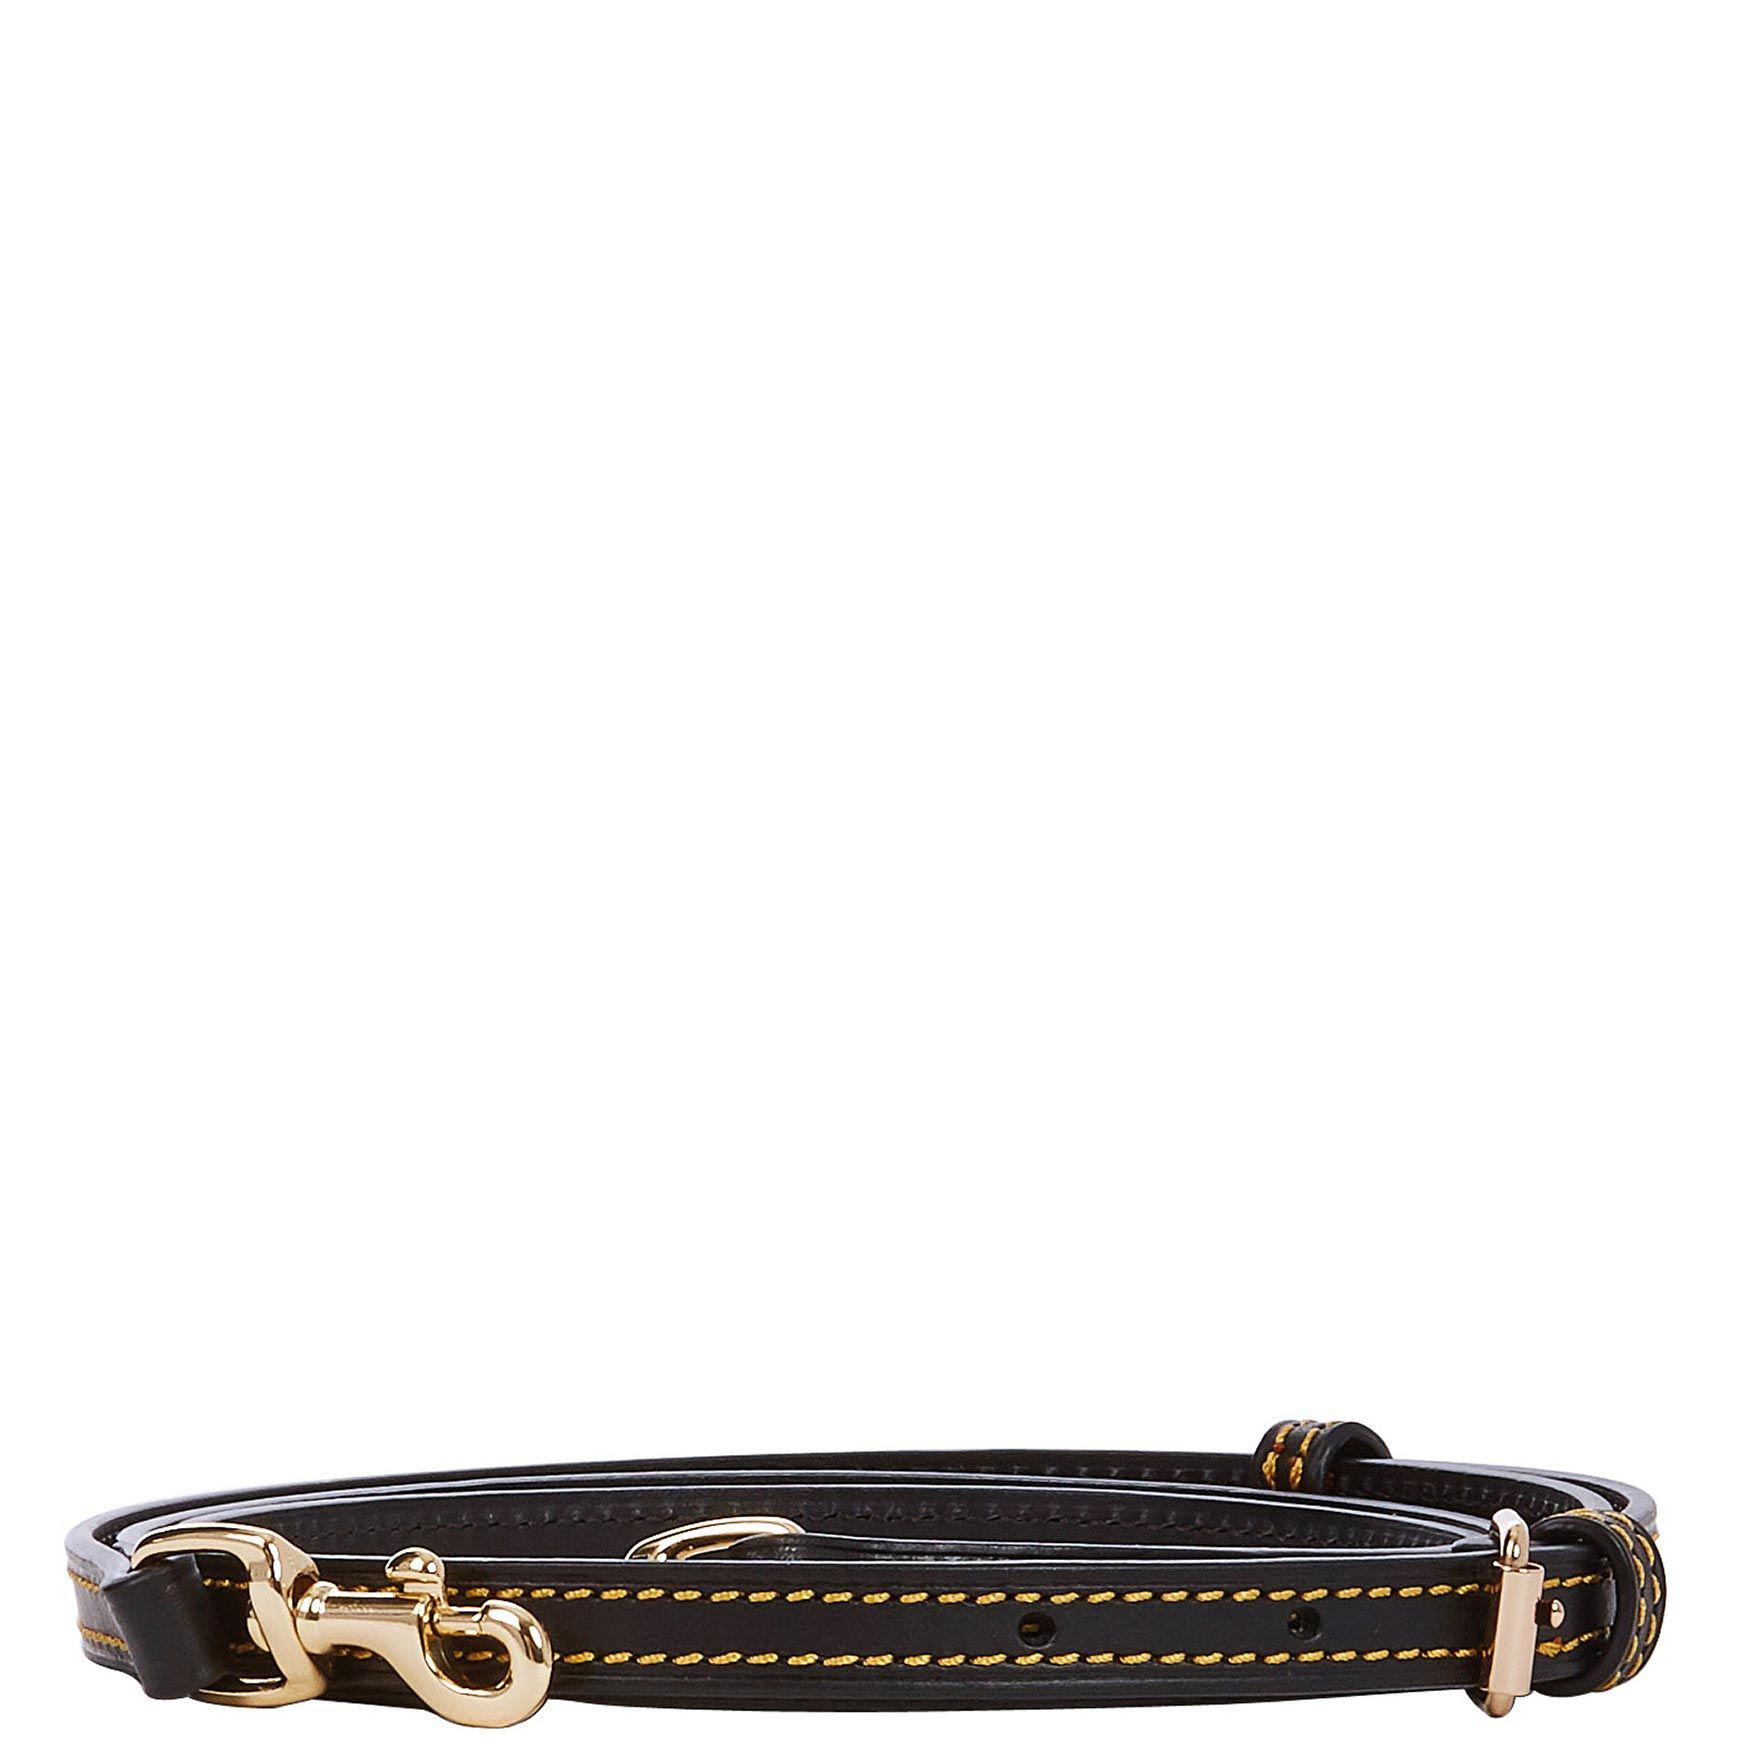 b54414a517eb Replacement Leather Bag Strap Black